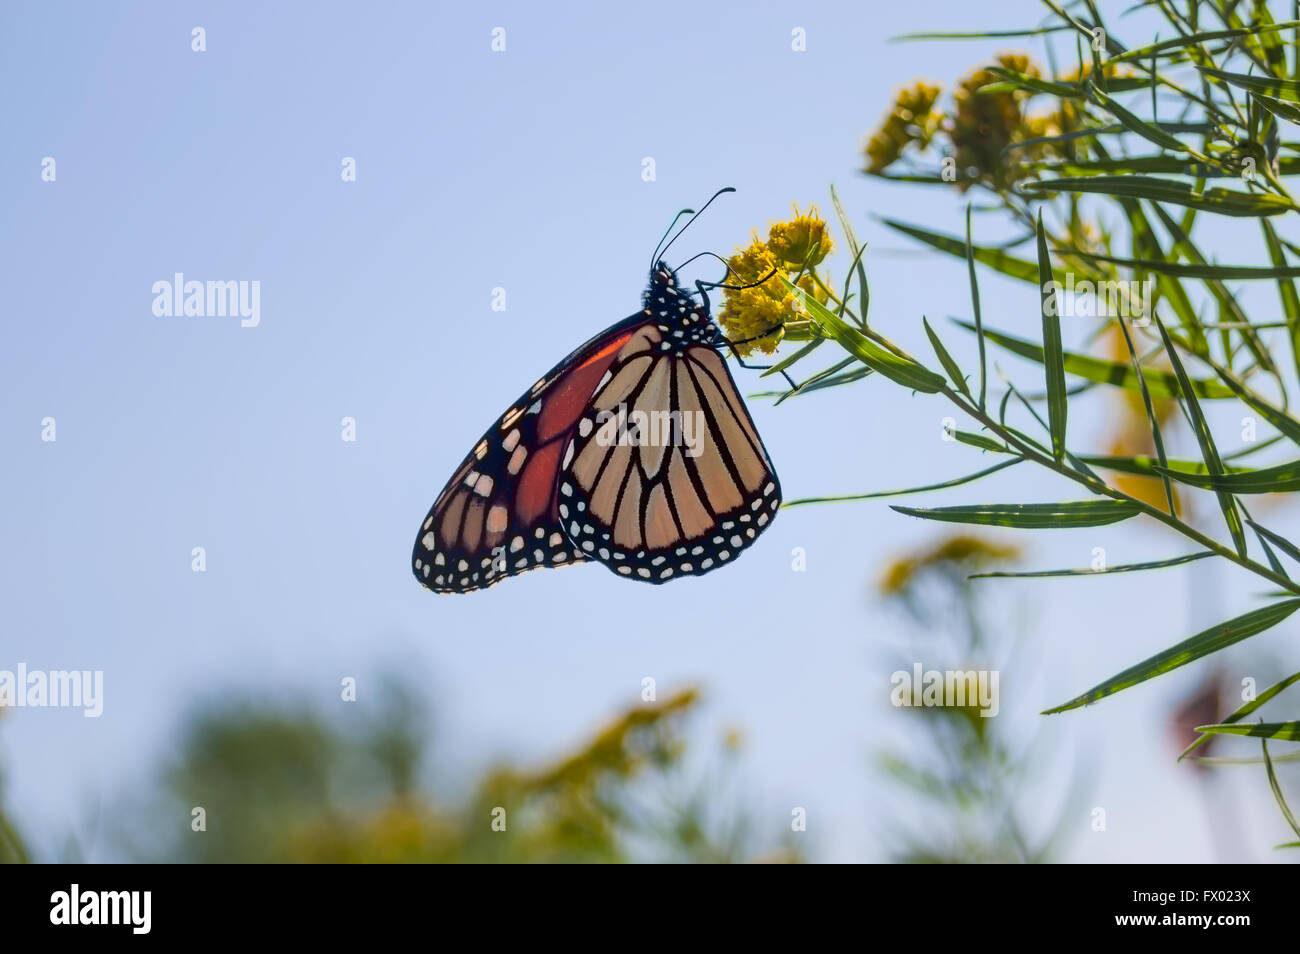 Monarch butterfly (Danaus plexippus) before migration in September from Canada.The picture is from the natural habitat. Stock Photo